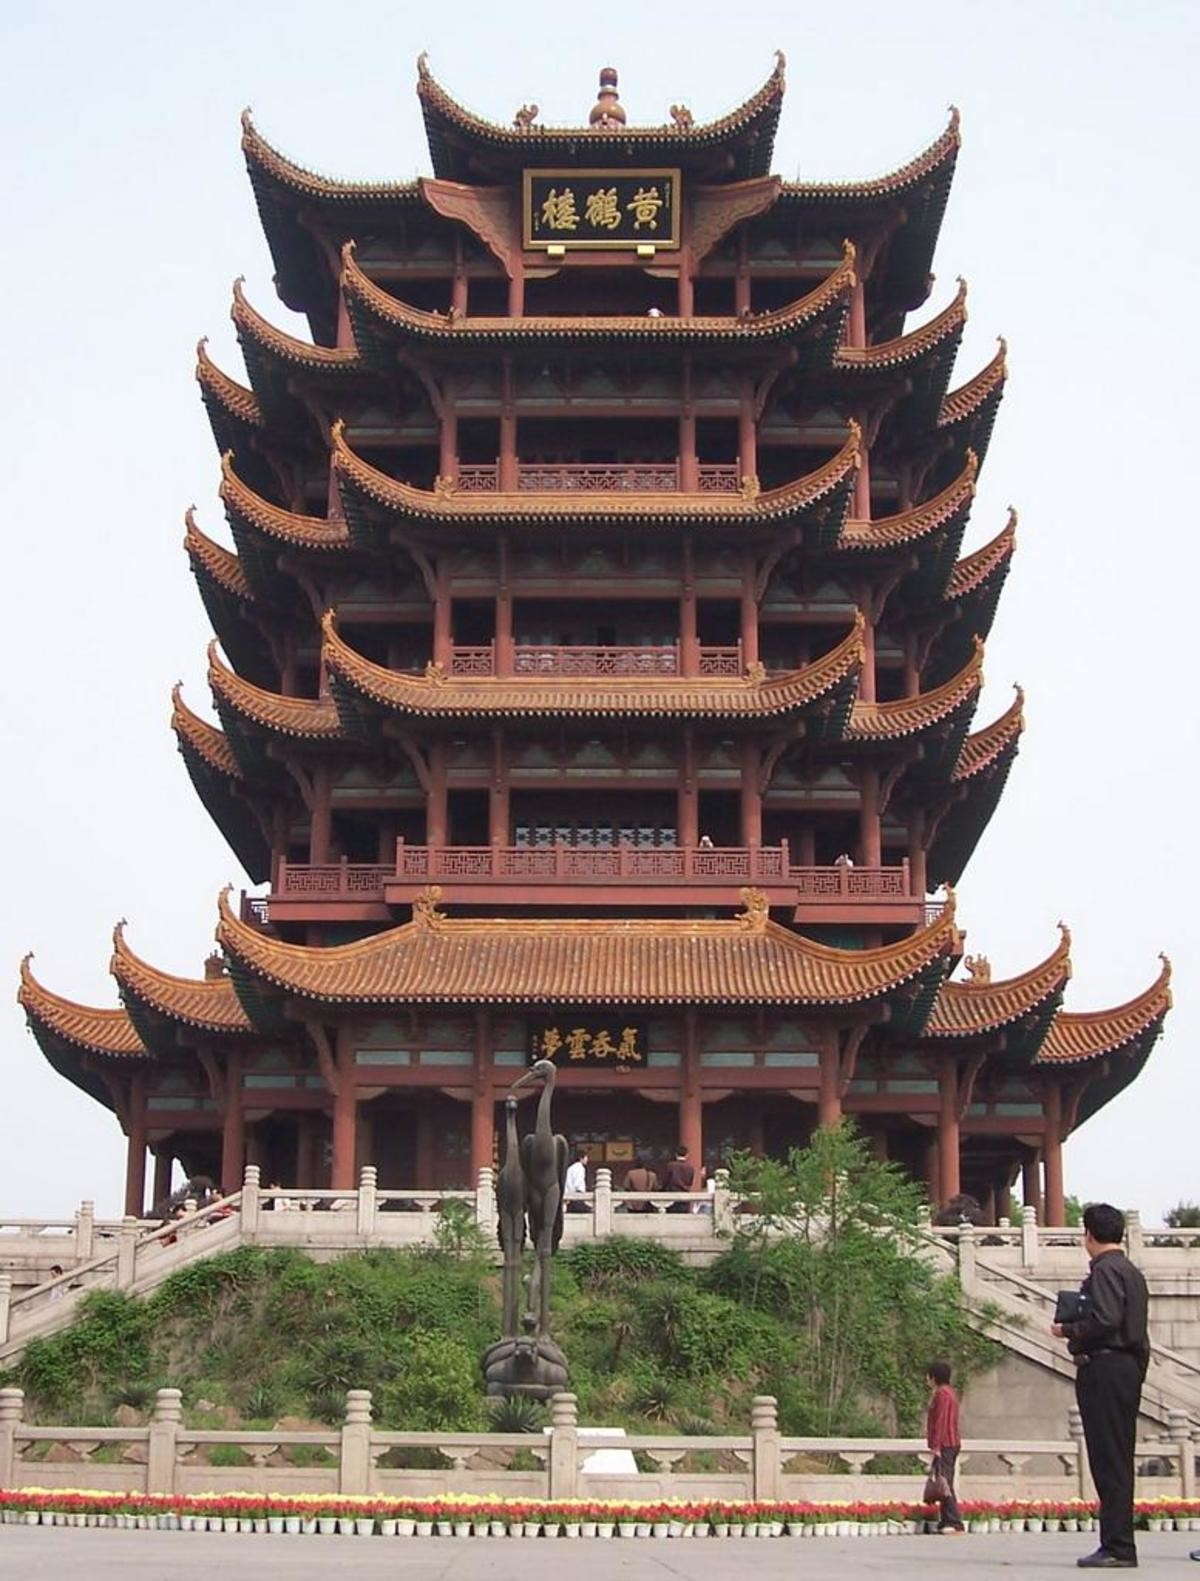 Yellow Crane Tower (Wuhan, China). join list: AwesomeArchitecture (77 subs)Mention History.. Loving this channel.